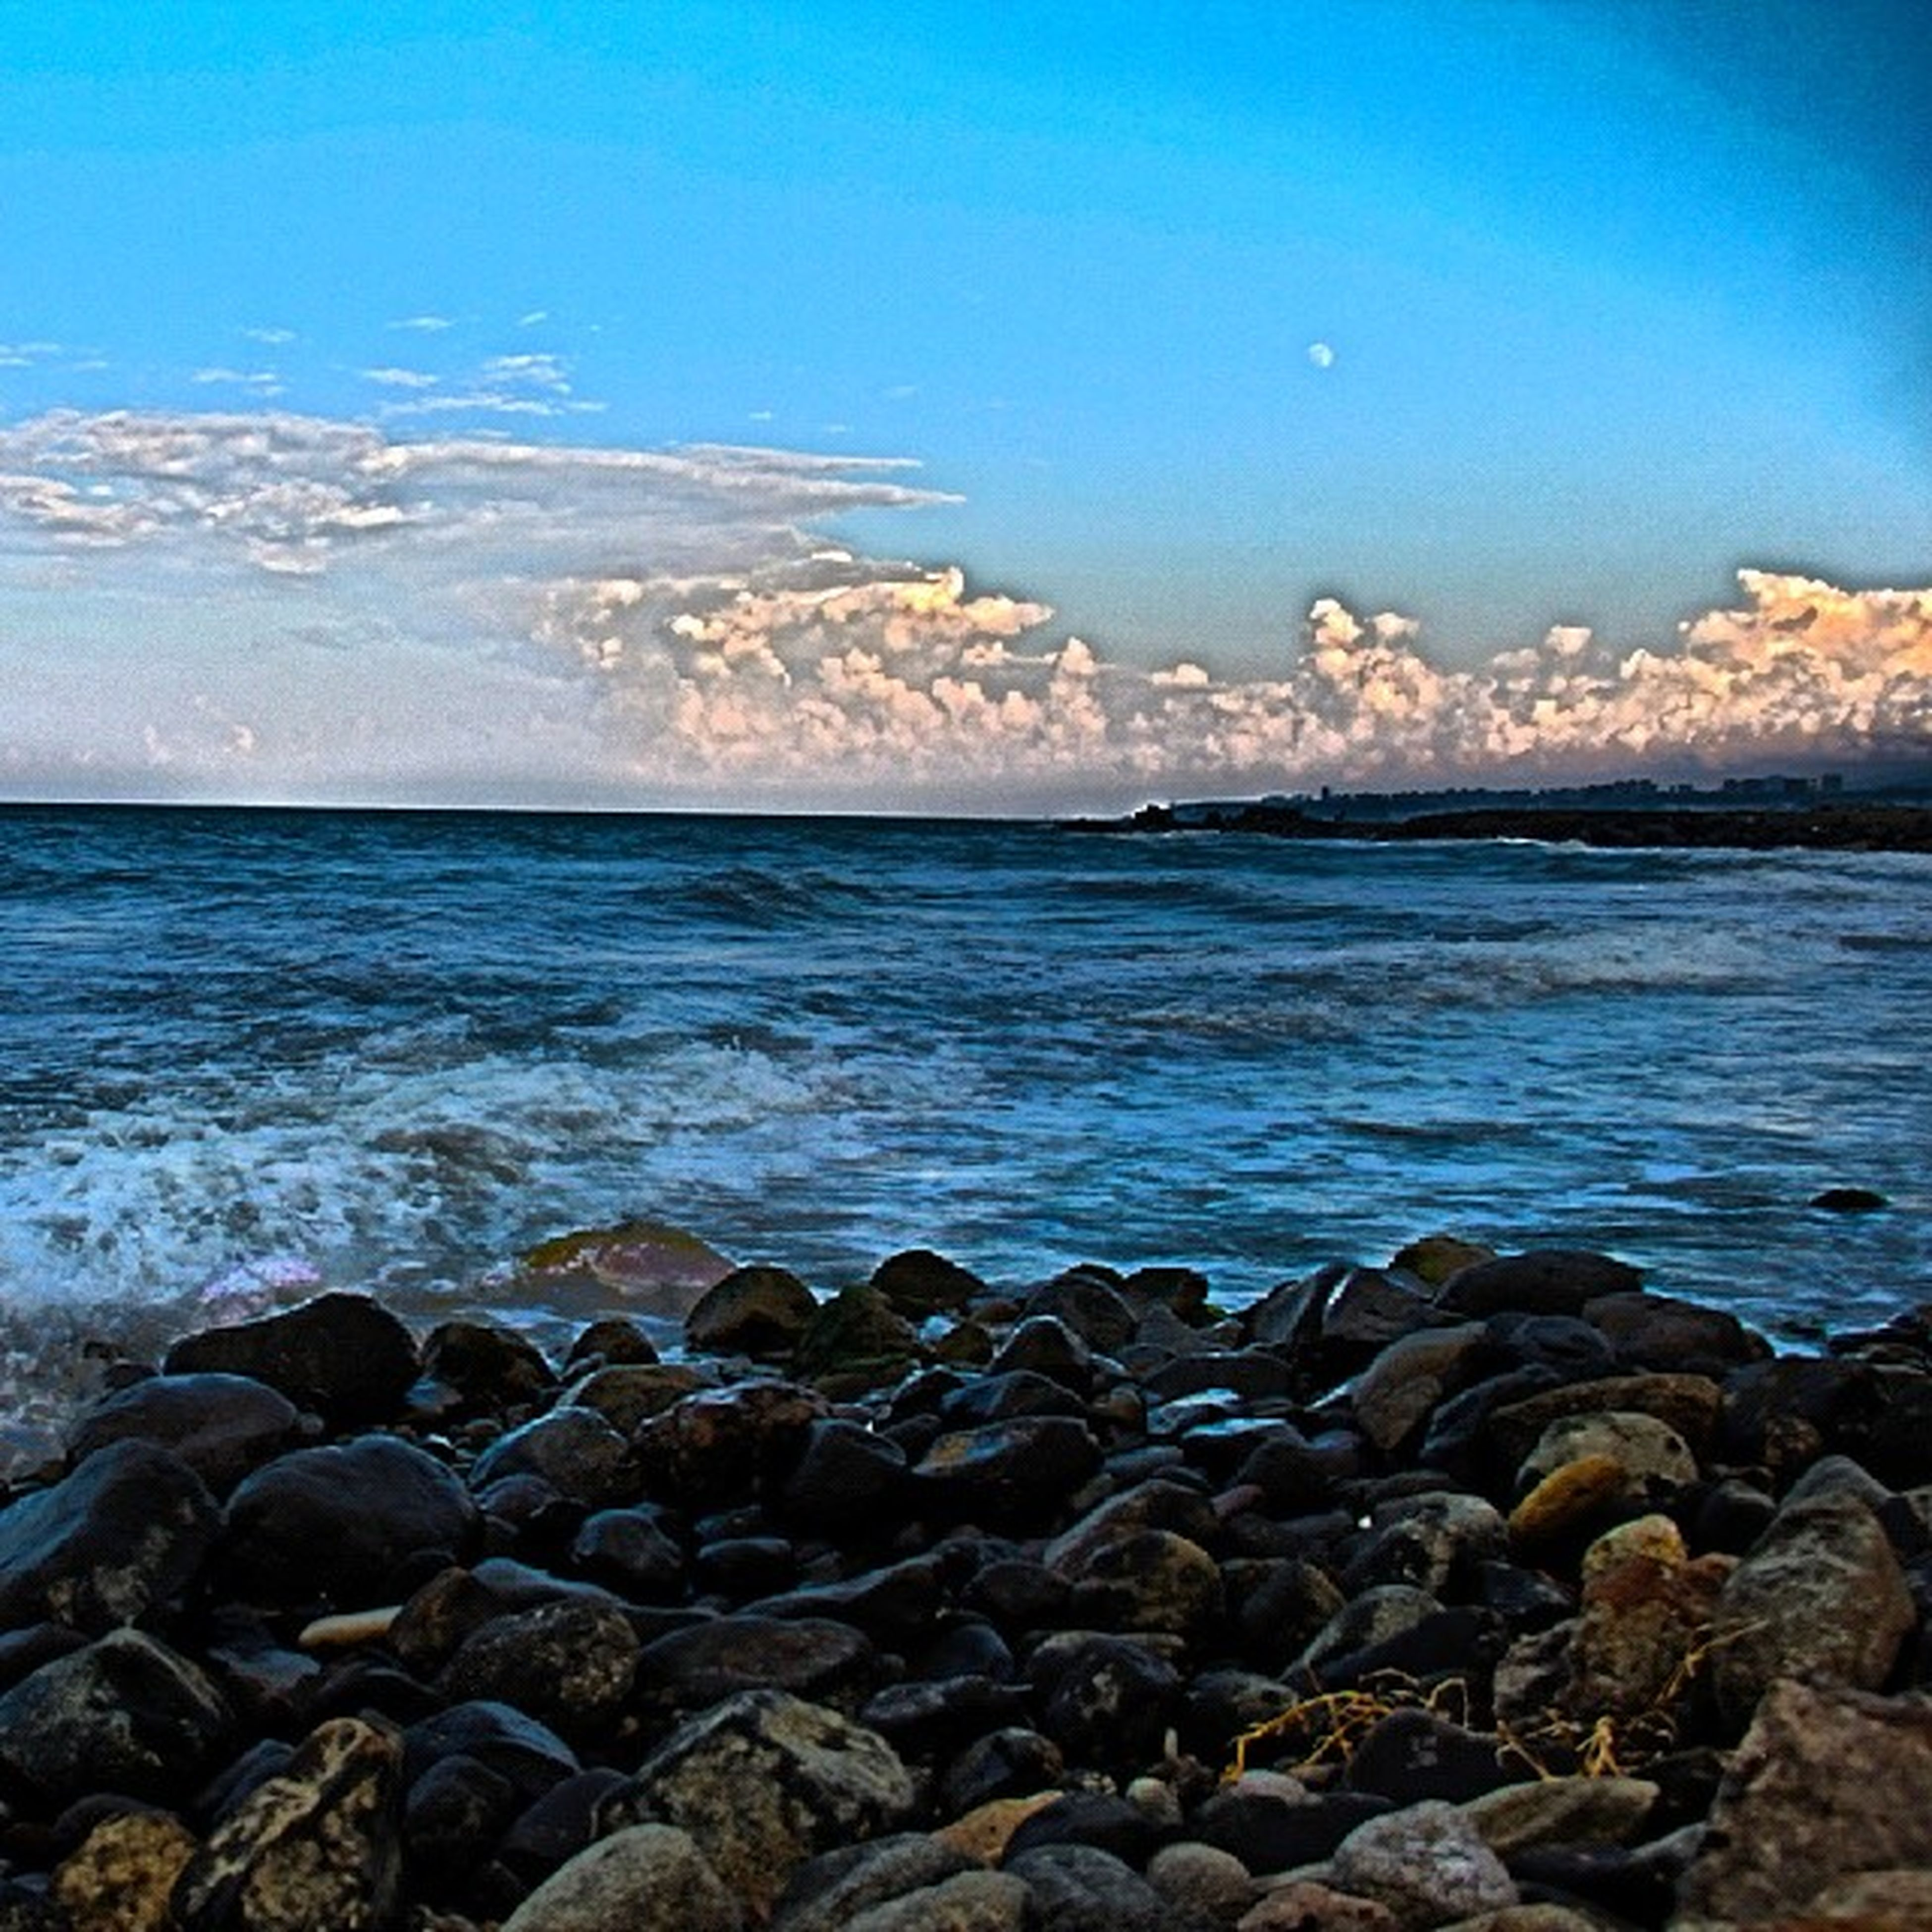 water, sea, scenics, tranquil scene, beauty in nature, tranquility, beach, horizon over water, blue, sky, nature, rock - object, shore, idyllic, stone - object, wave, clear sky, pebble, outdoors, remote